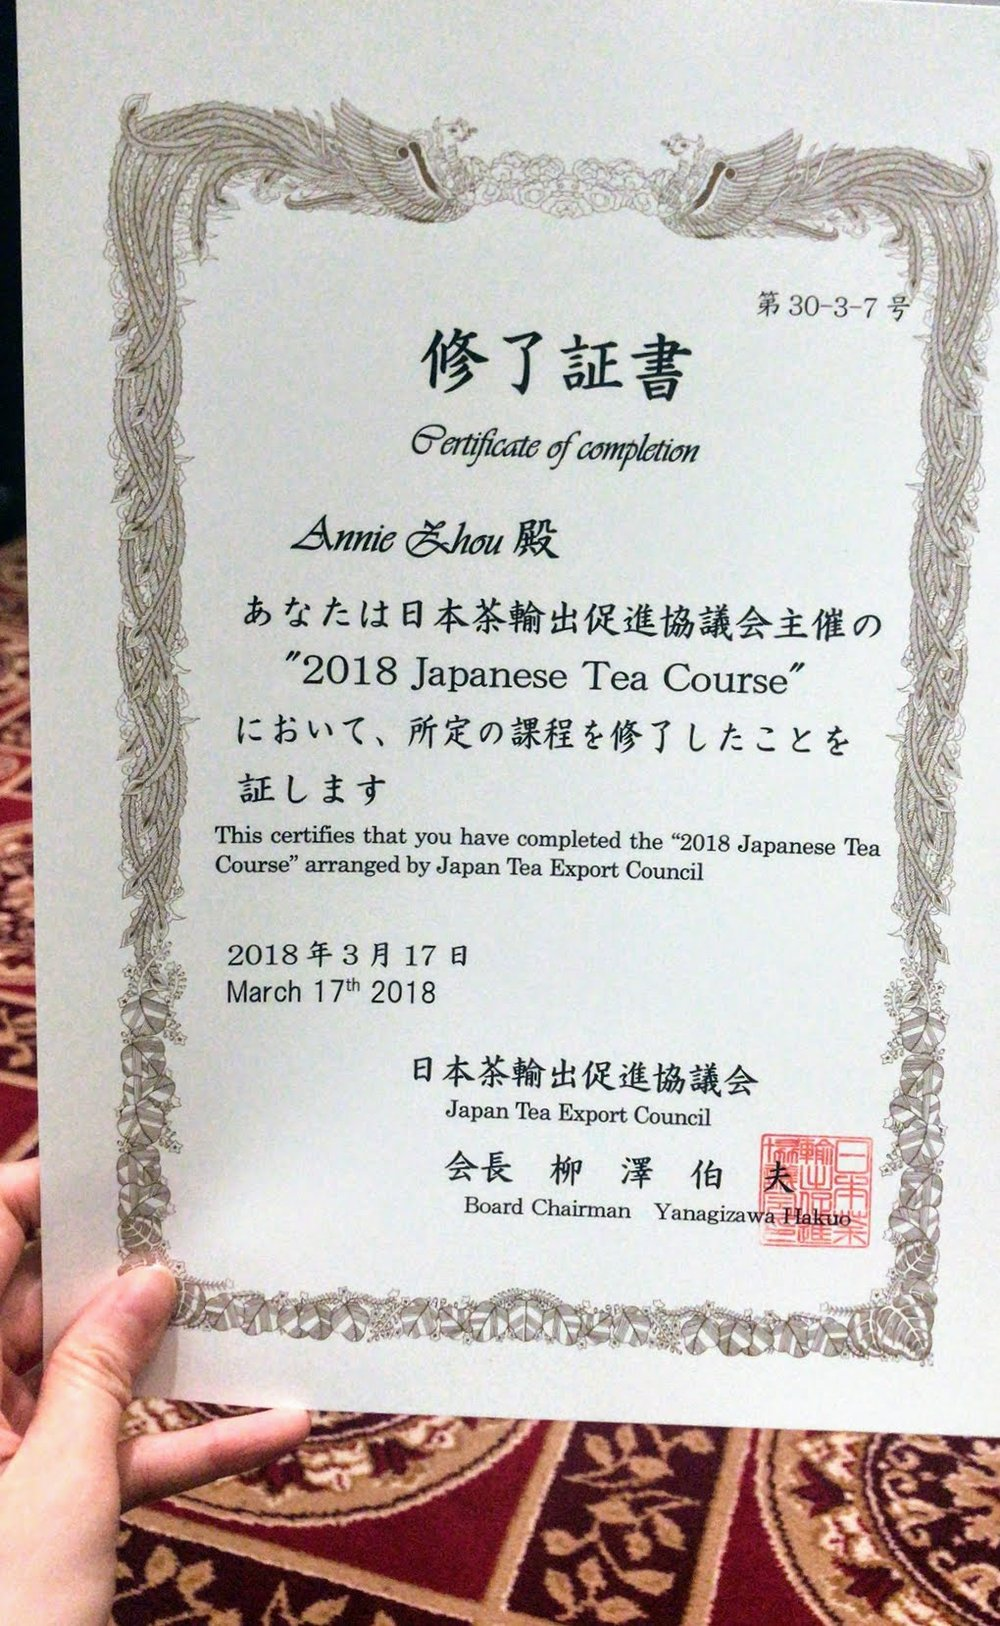 I got the completion certificate!